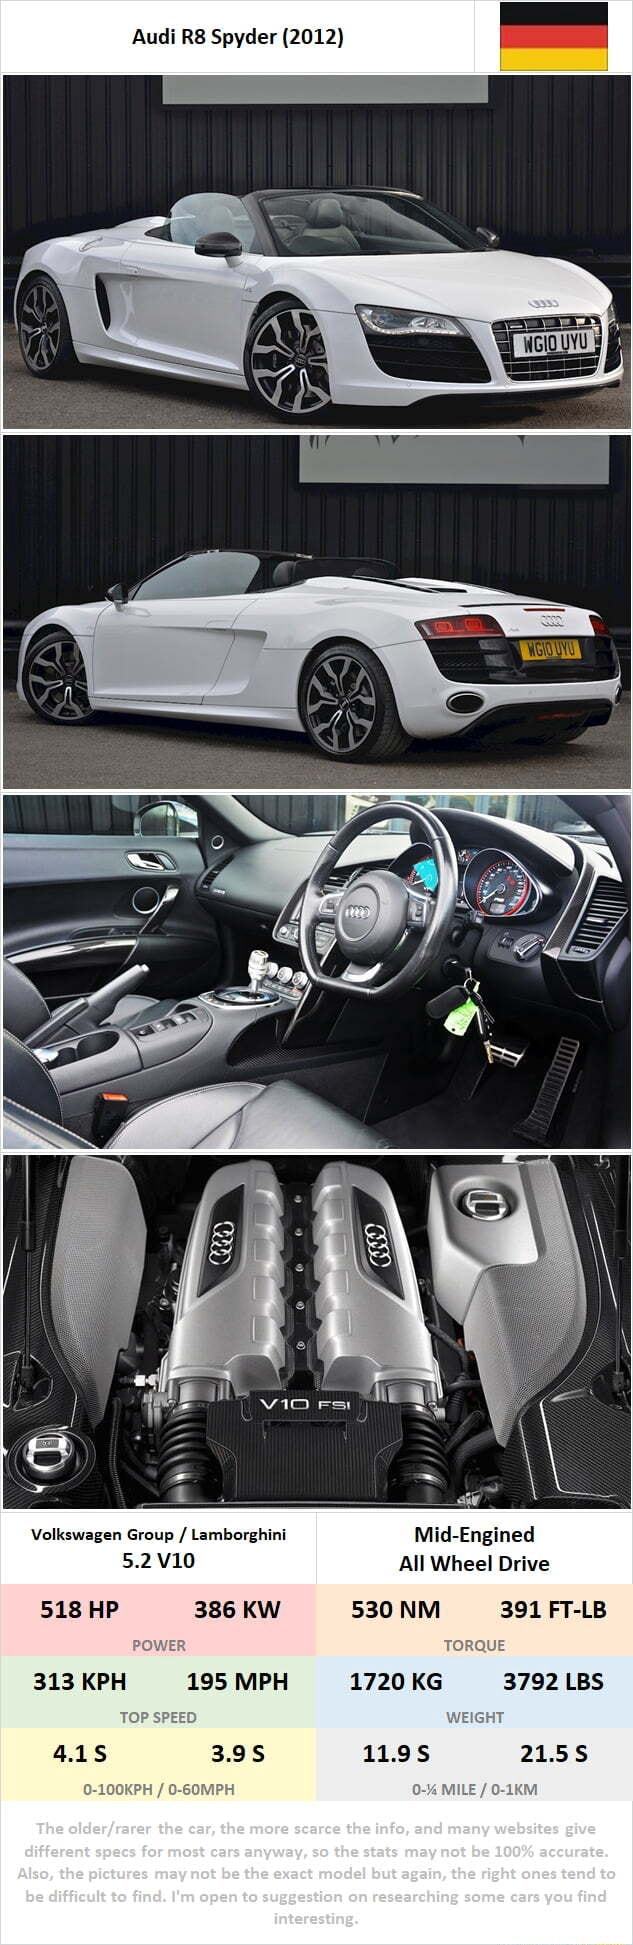 Audi RB Spyder 2012 Volkswagen Group Lamborghini 5.2 Mid Engined All Wheel Drive 530 NM 391 FT LB TORQUE 1720 KG 3792 LBS 11.9S 386 KW 313 KPH 195 MPH Tho tho 518 HP different specs for most cars anyway, so the stats may not be 100% accurate. tho OS be difficult to find. I'm open to suggestion on researching some care you find memes